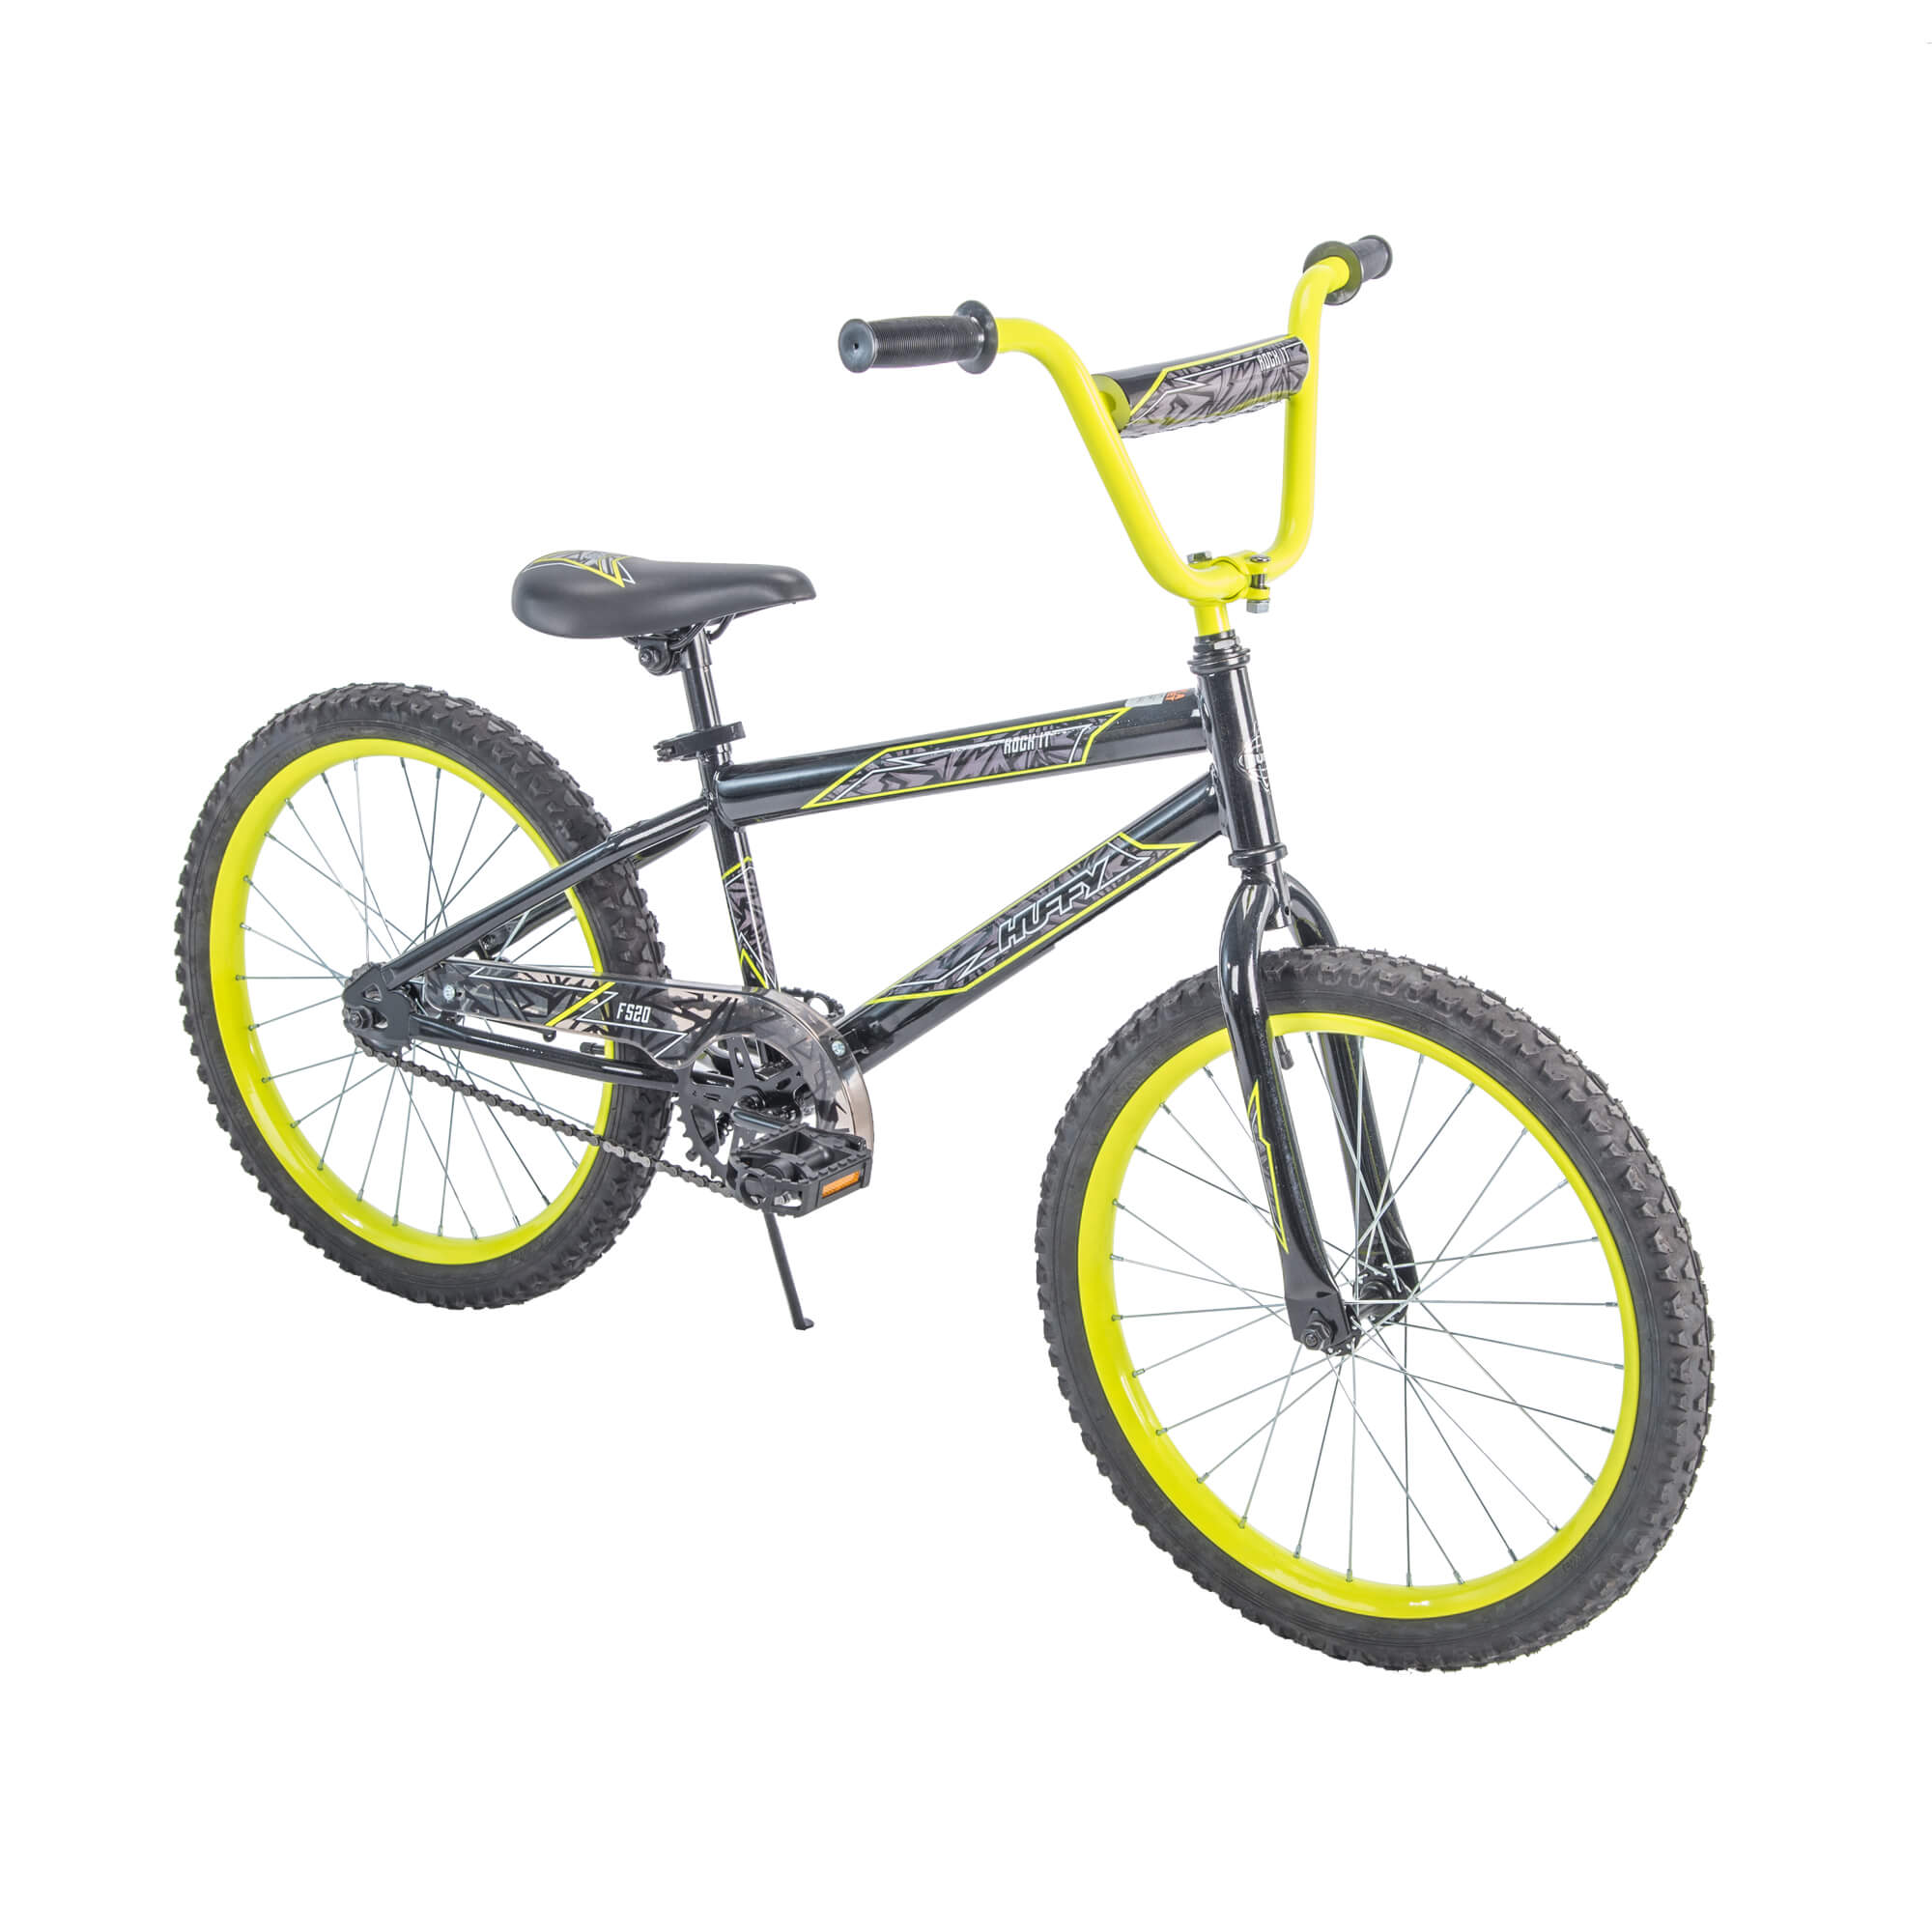 "Huffy 20"" Rock It Boys' Bike, Metallic Black with Neon Yellow Accents by Huffy"